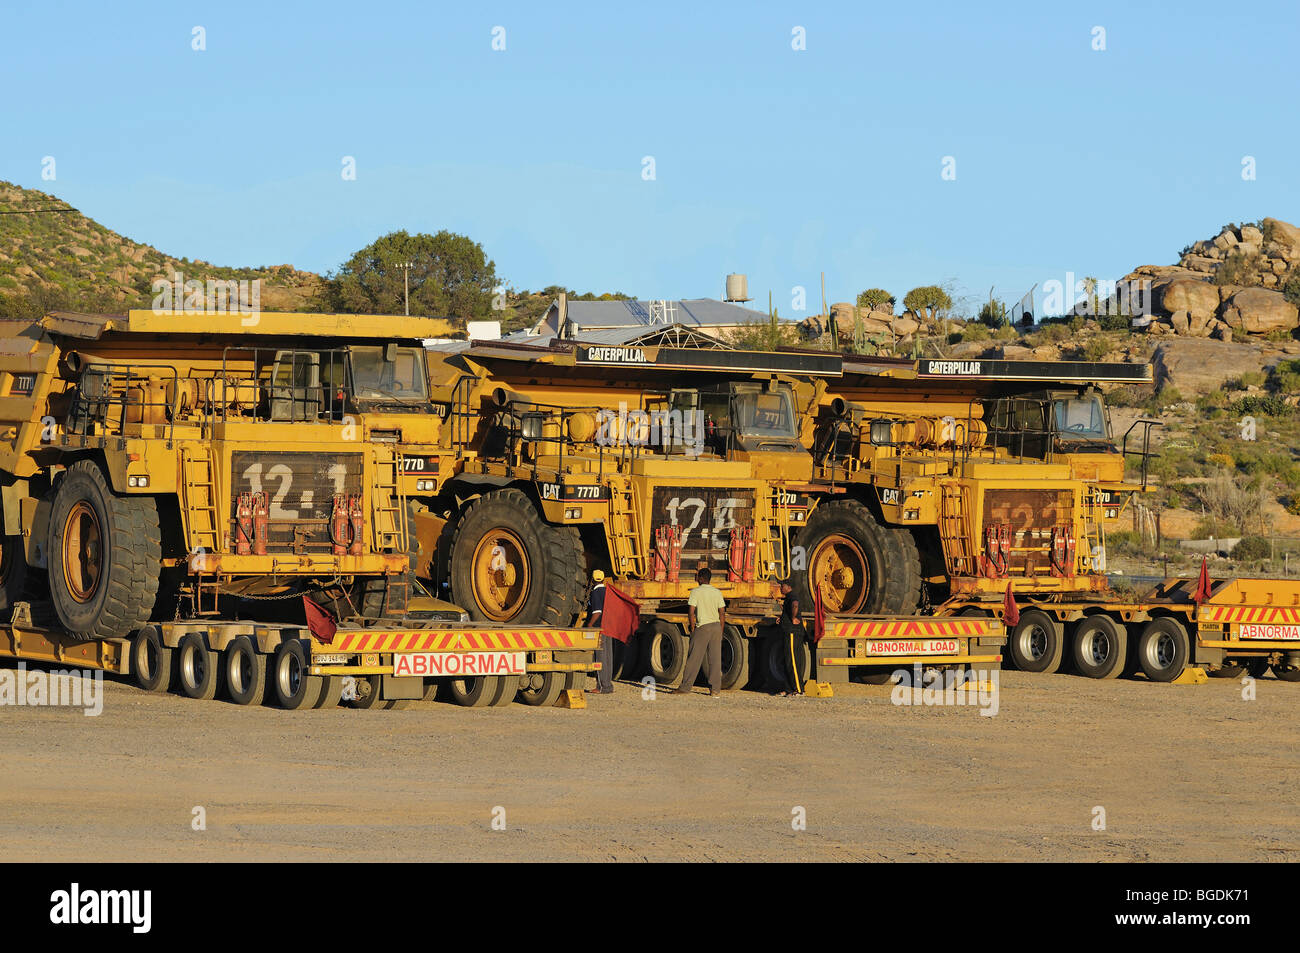 Transport of Caterpillar 777D off-highway trucks for diamond mines, South Africa, Africa - Stock Image